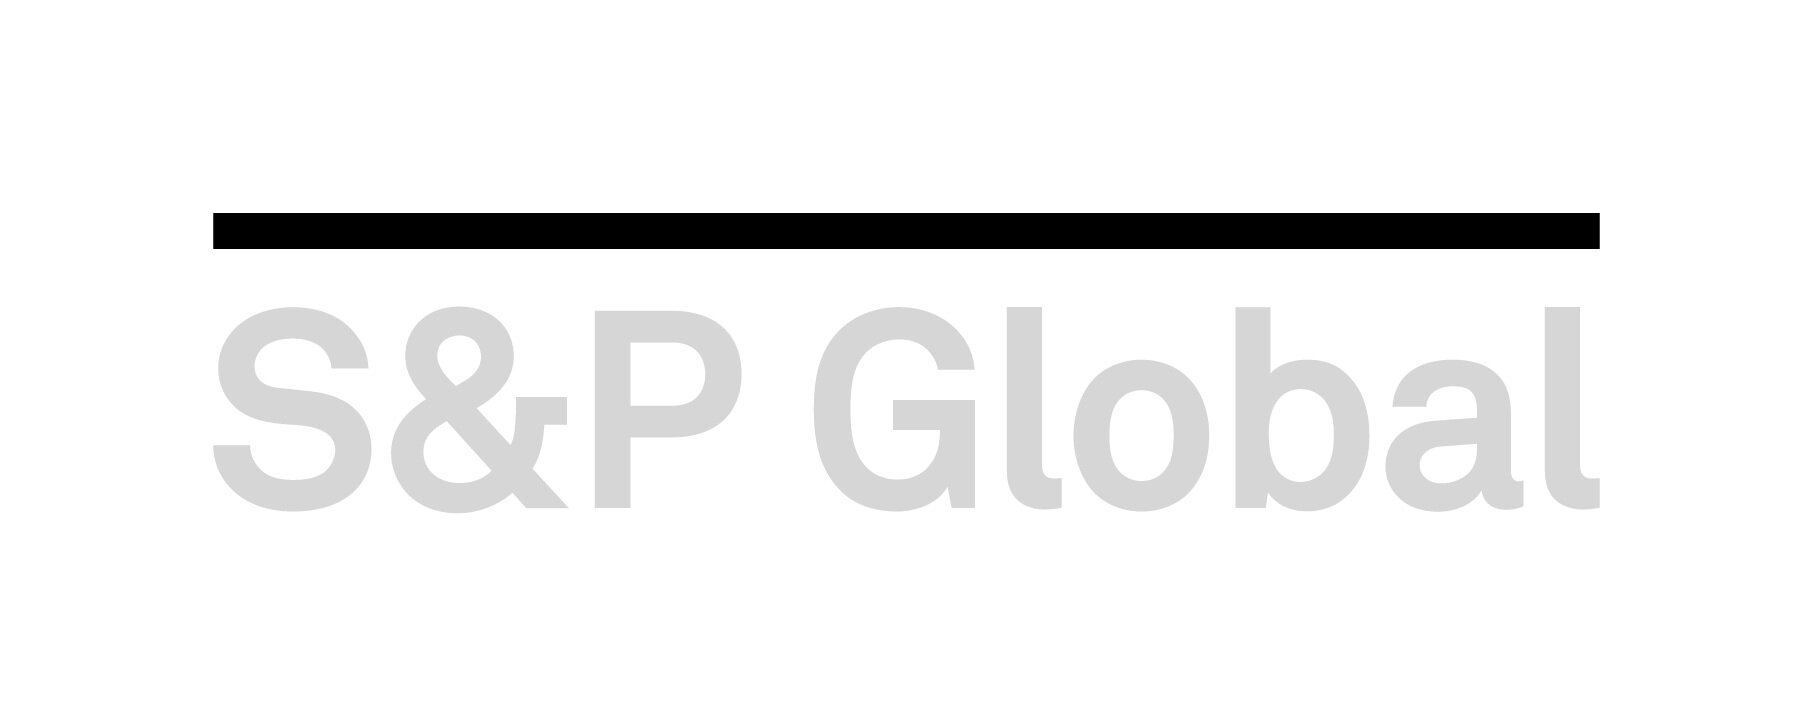 S&P Global.png